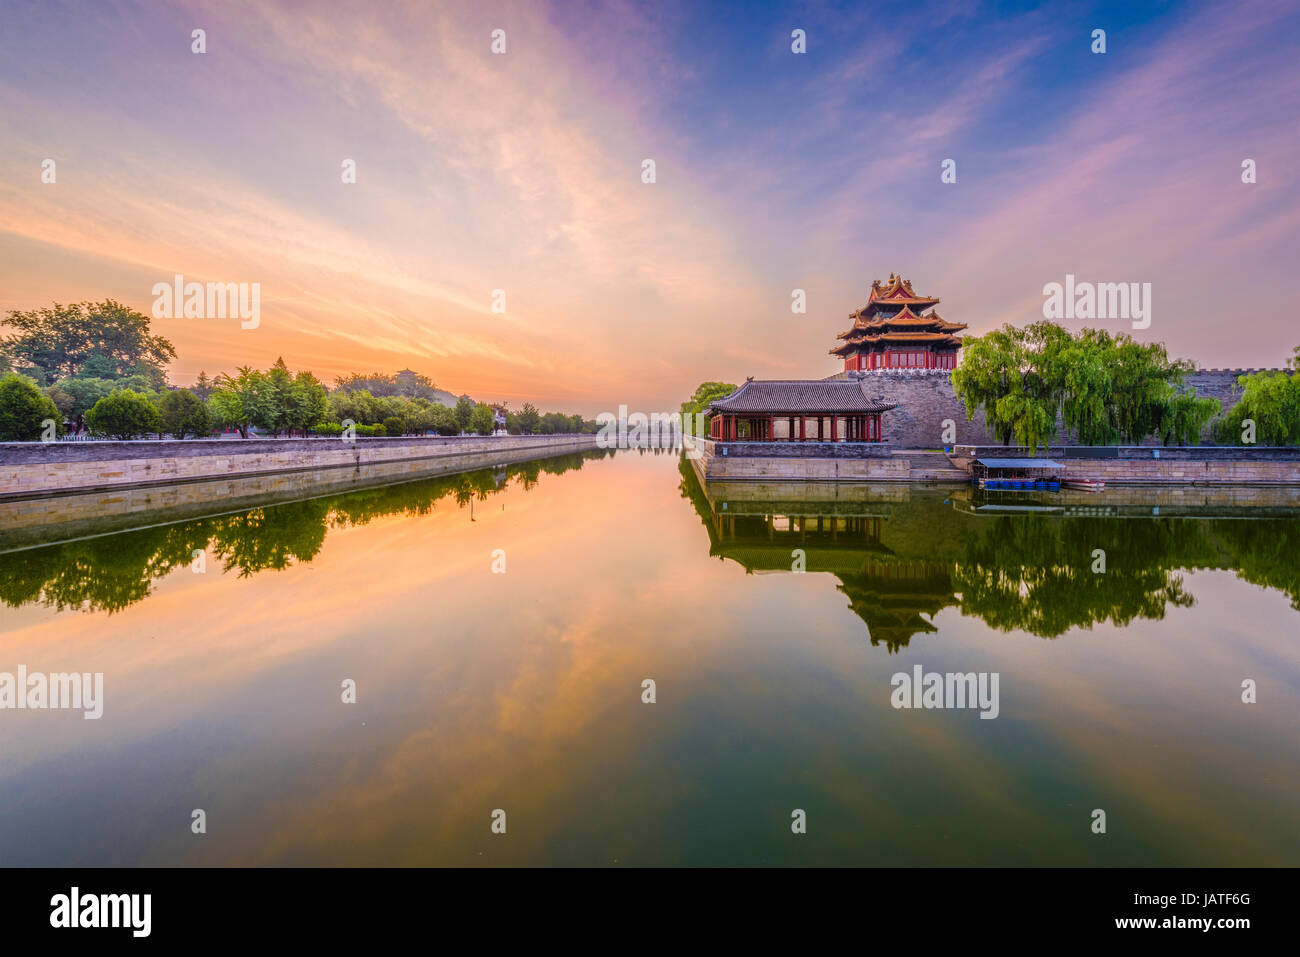 Beijing, China forbidden city outer moat. Stock Photo